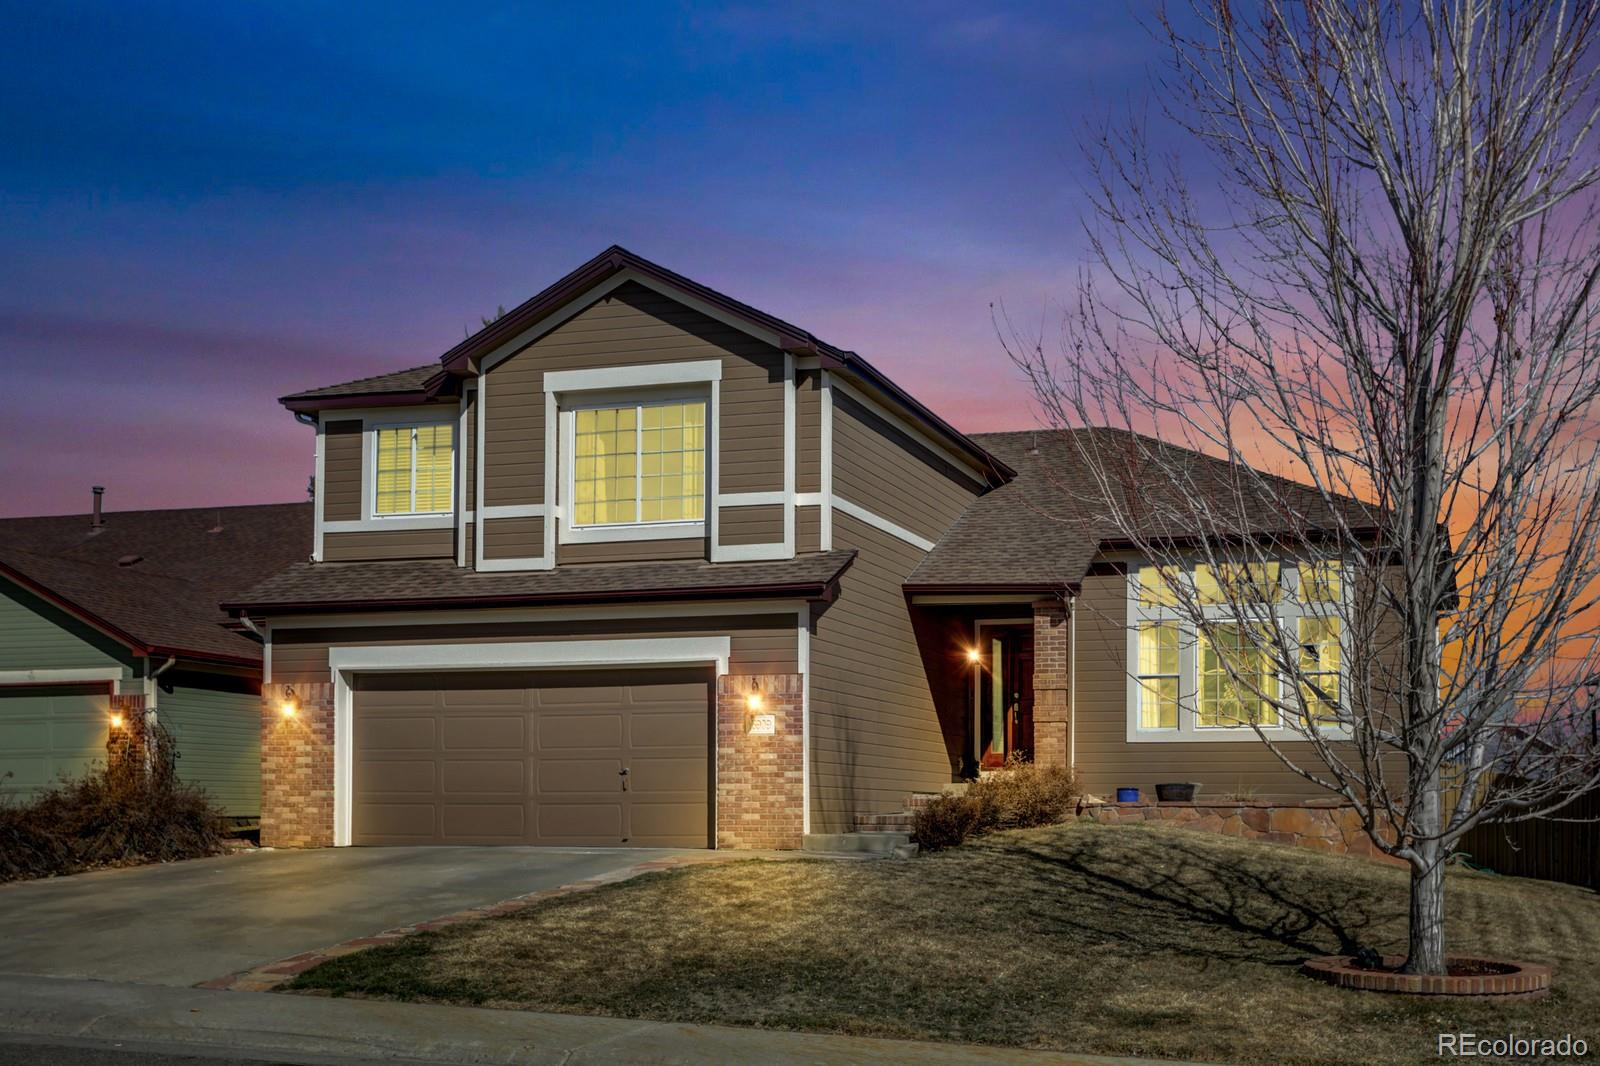 MLS# 8424791 - 1 - 16909 Molina Place, Parker, CO 80134